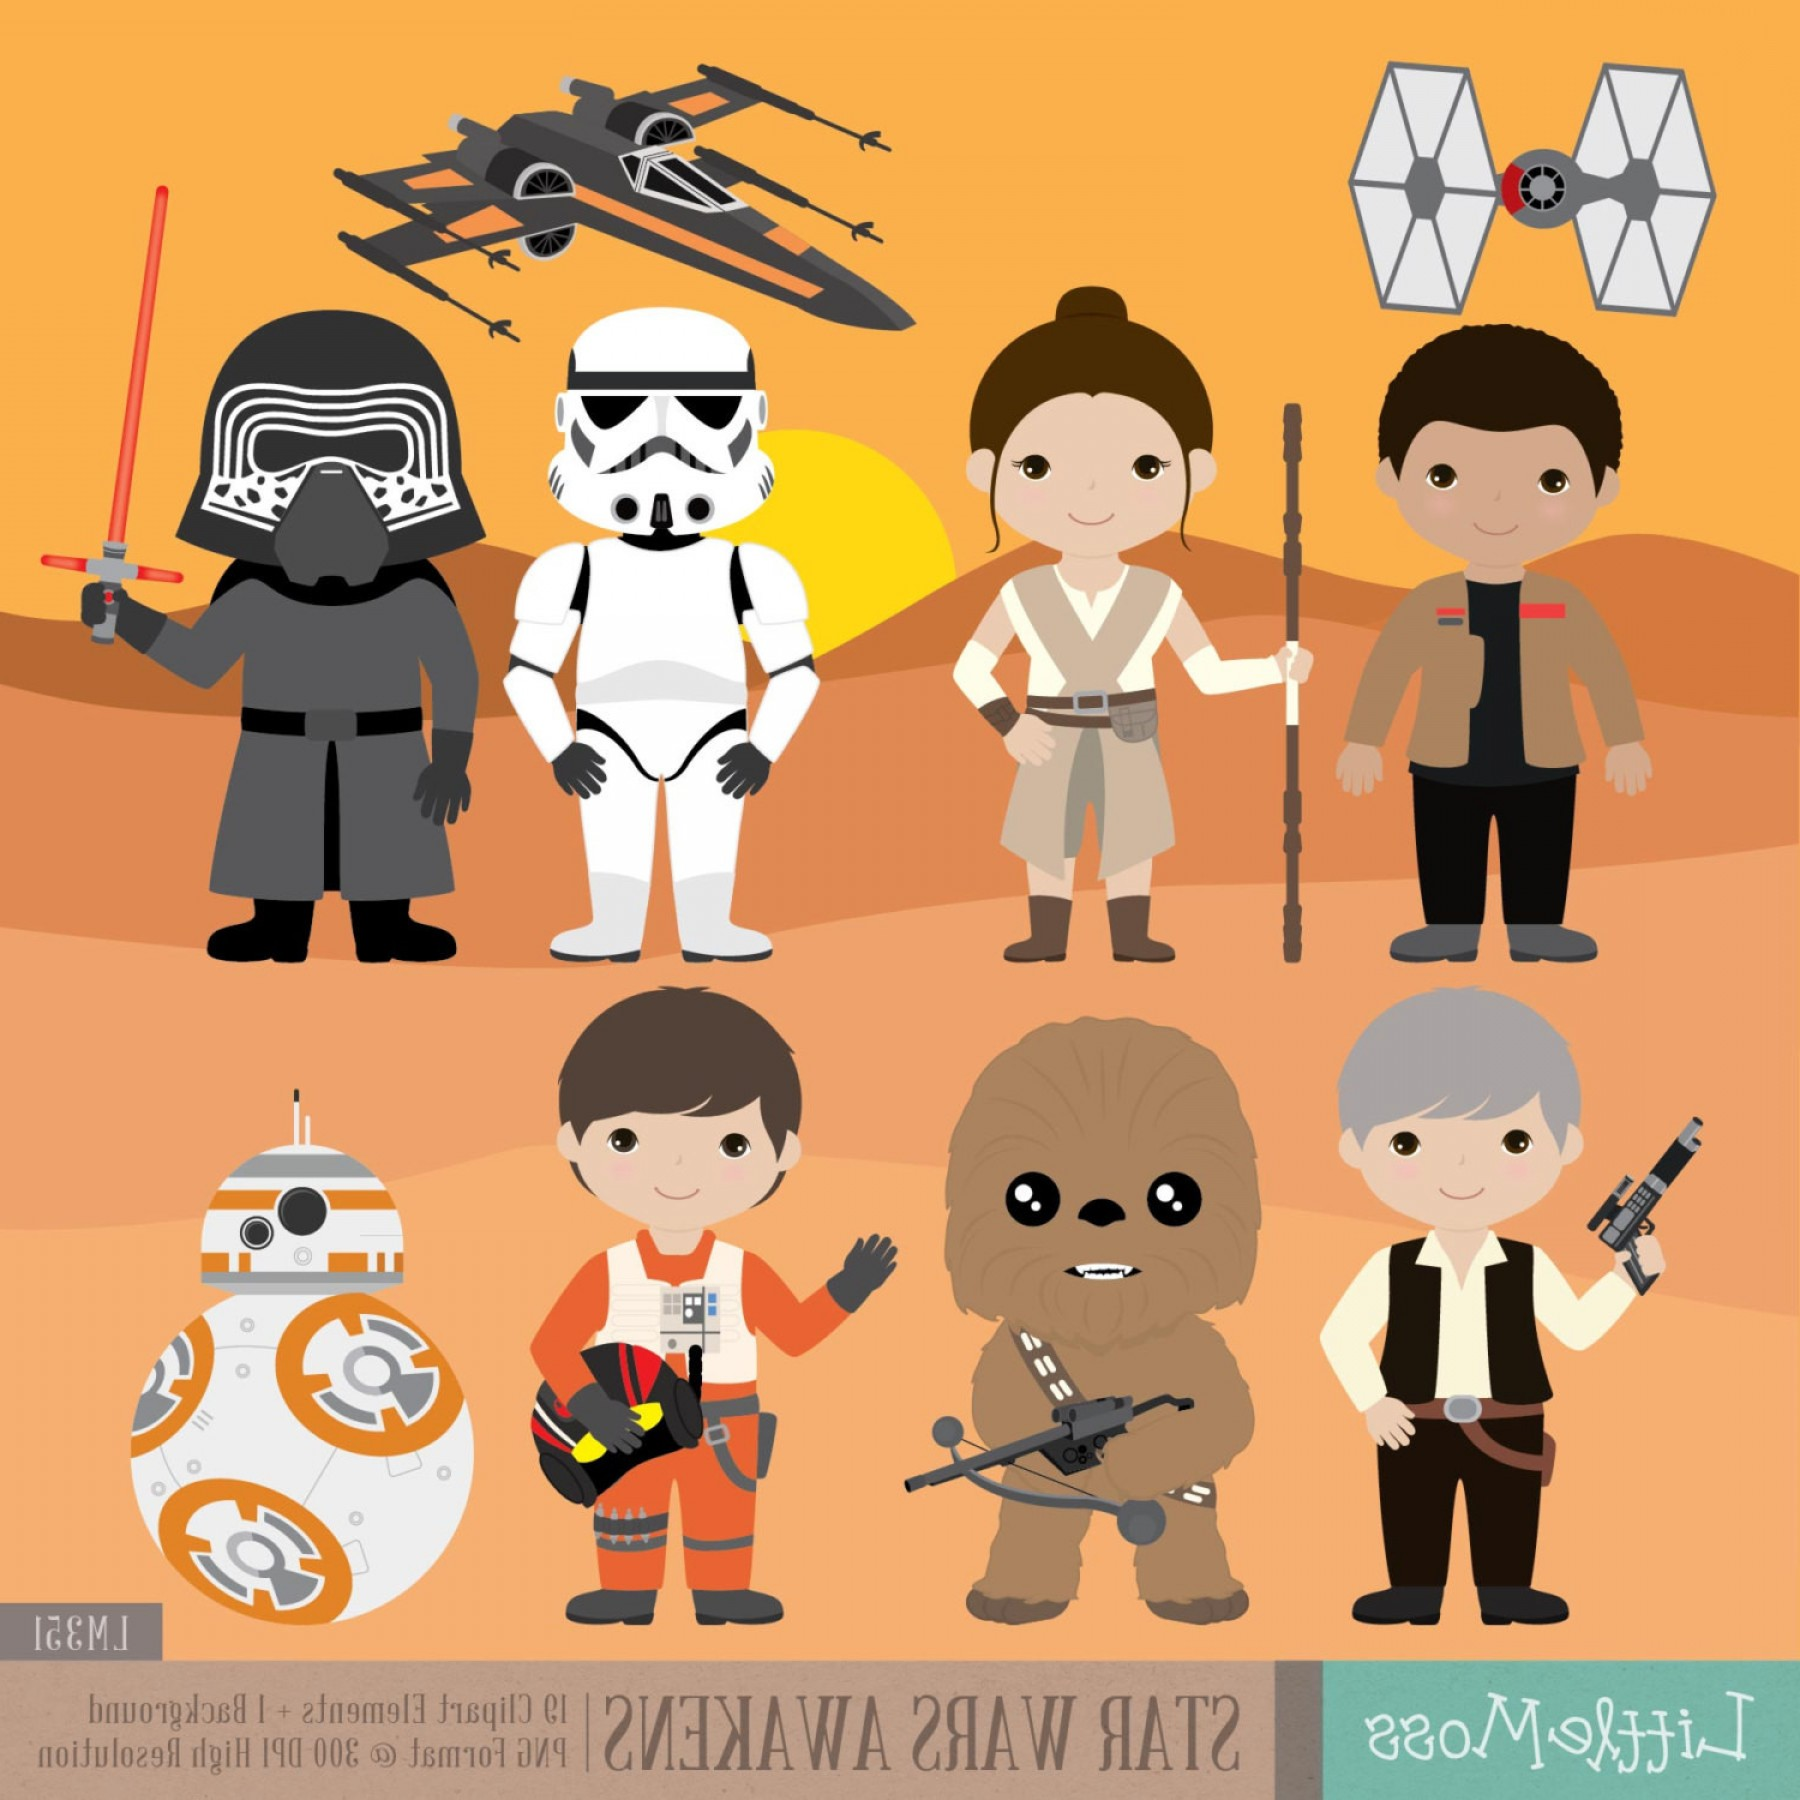 Il Fullxfull Qz Jpg Version Exceptional Star Wars Characters.